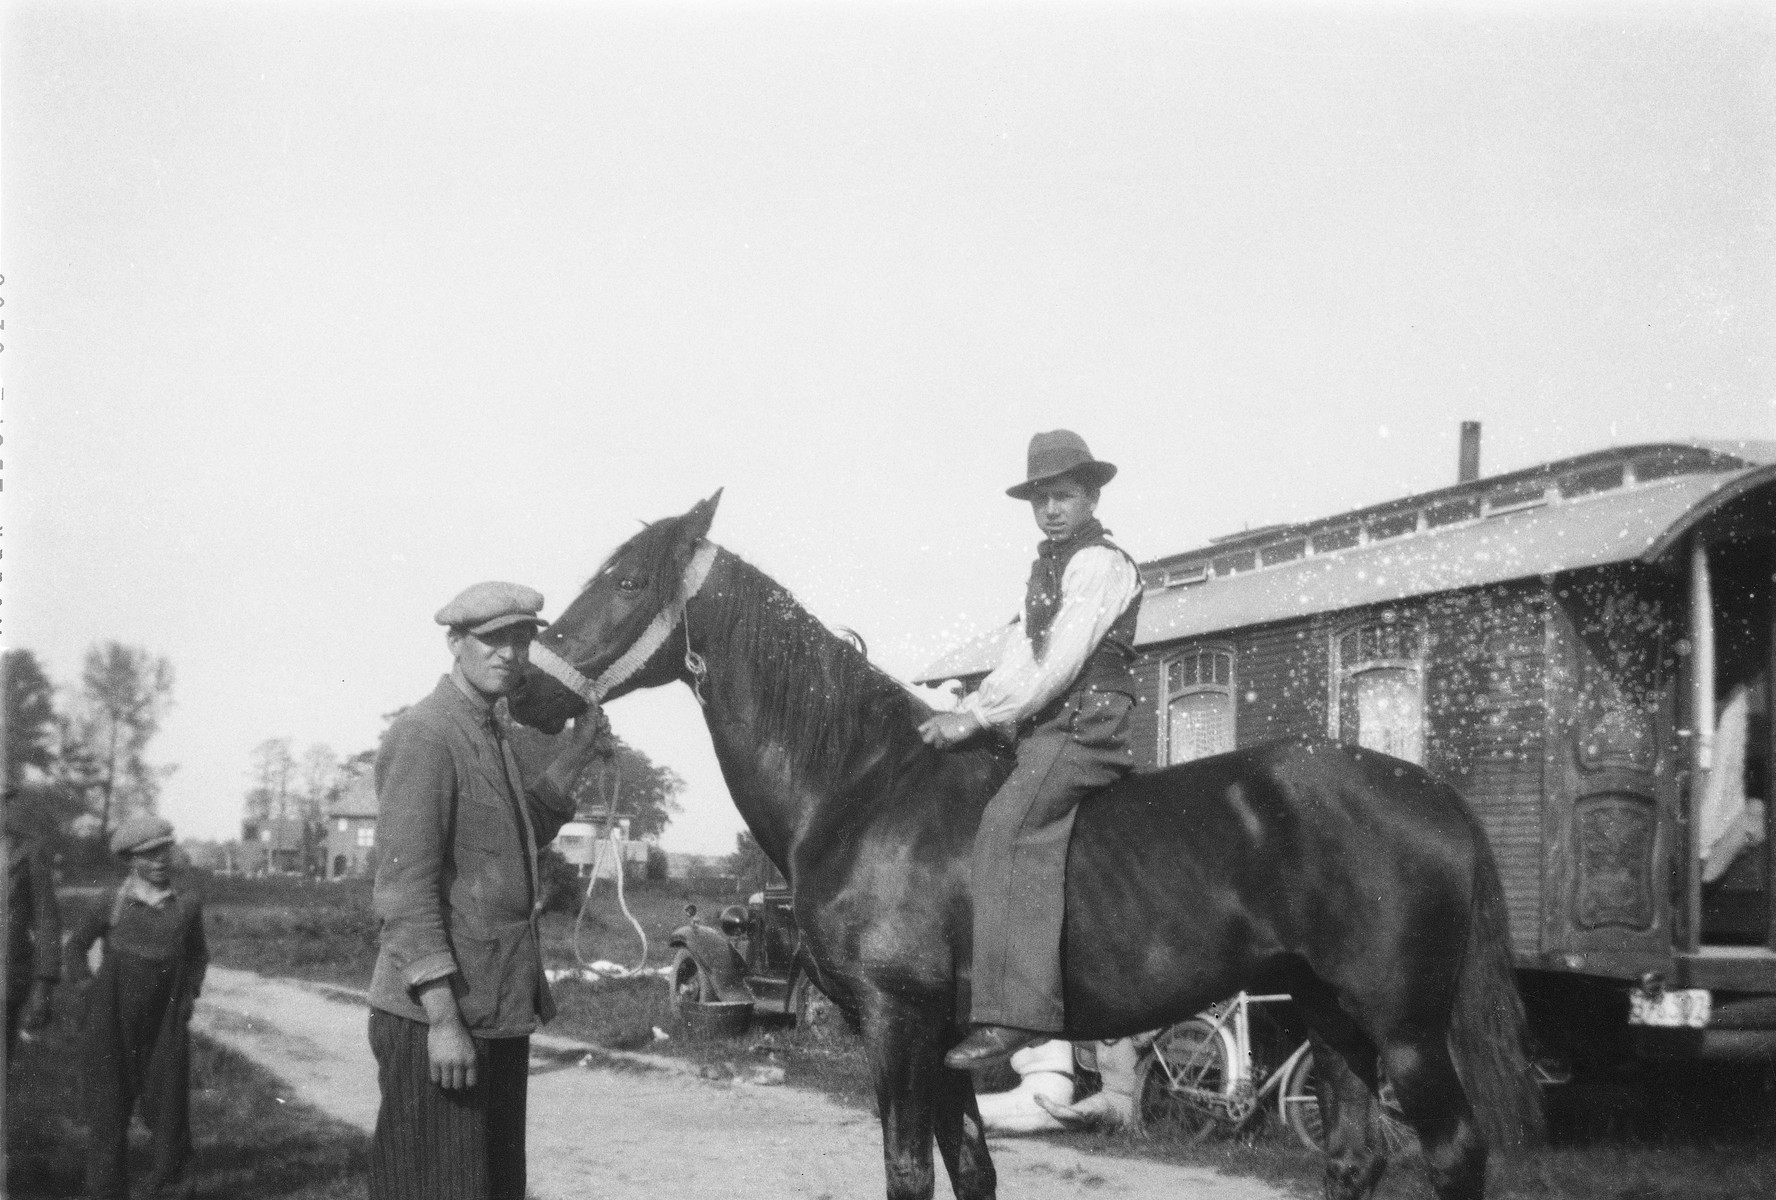 A Roma (Gypsy) man holds a horse as Yayal (last name unknown), another man is seated astride.